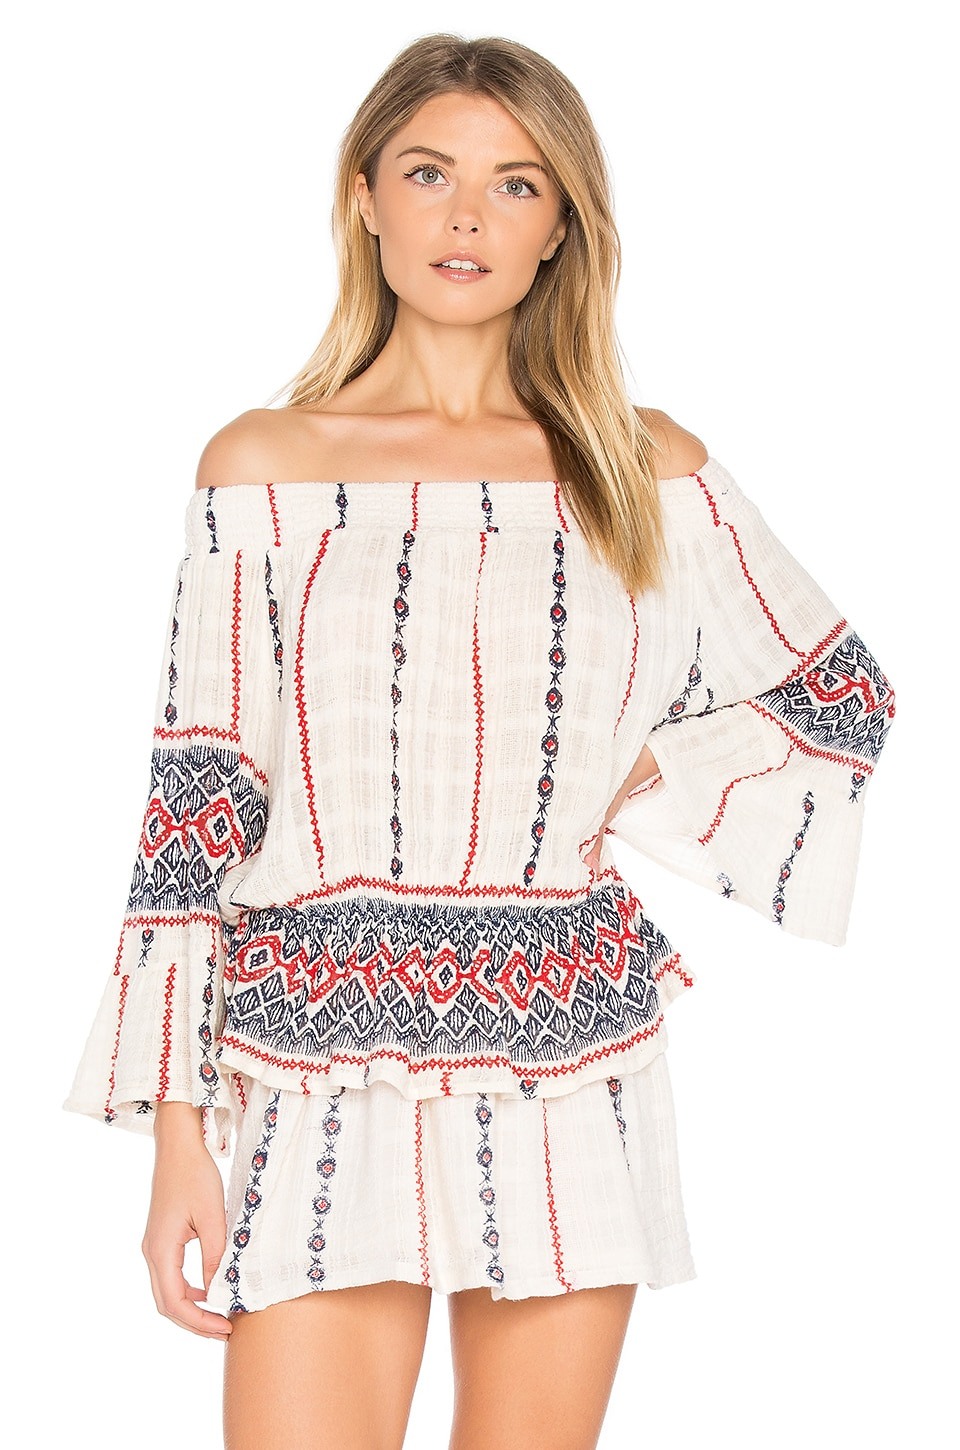 Raga Amalia Off Shoulder Top in White